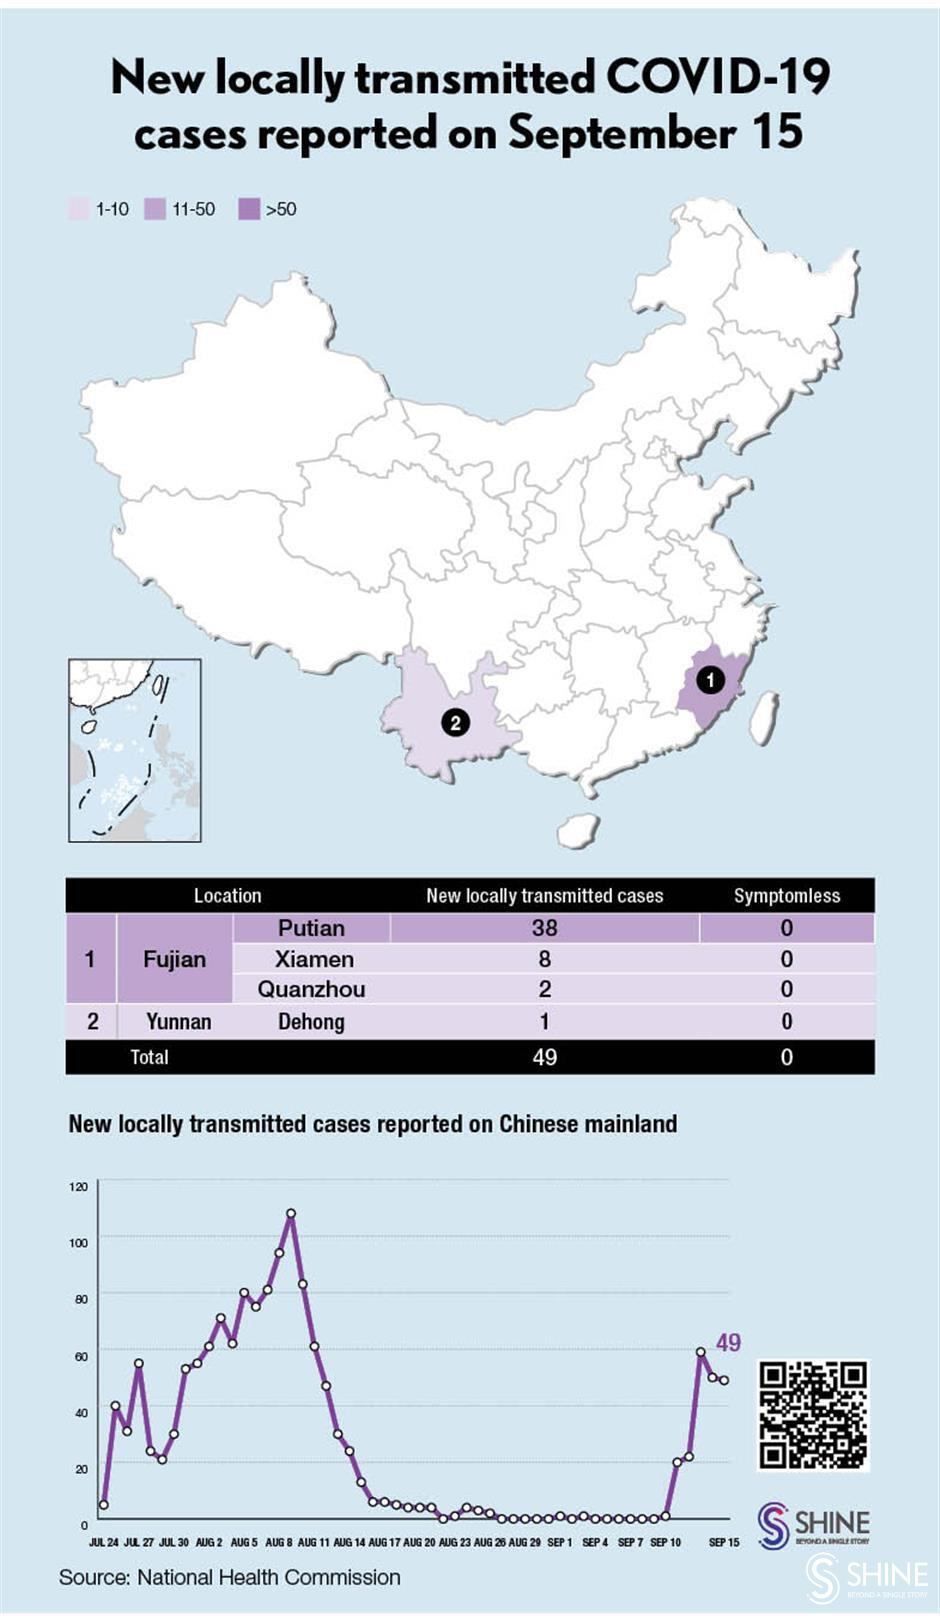 Chinese mainland reports 49 new locally transmitted COVID-19 cases